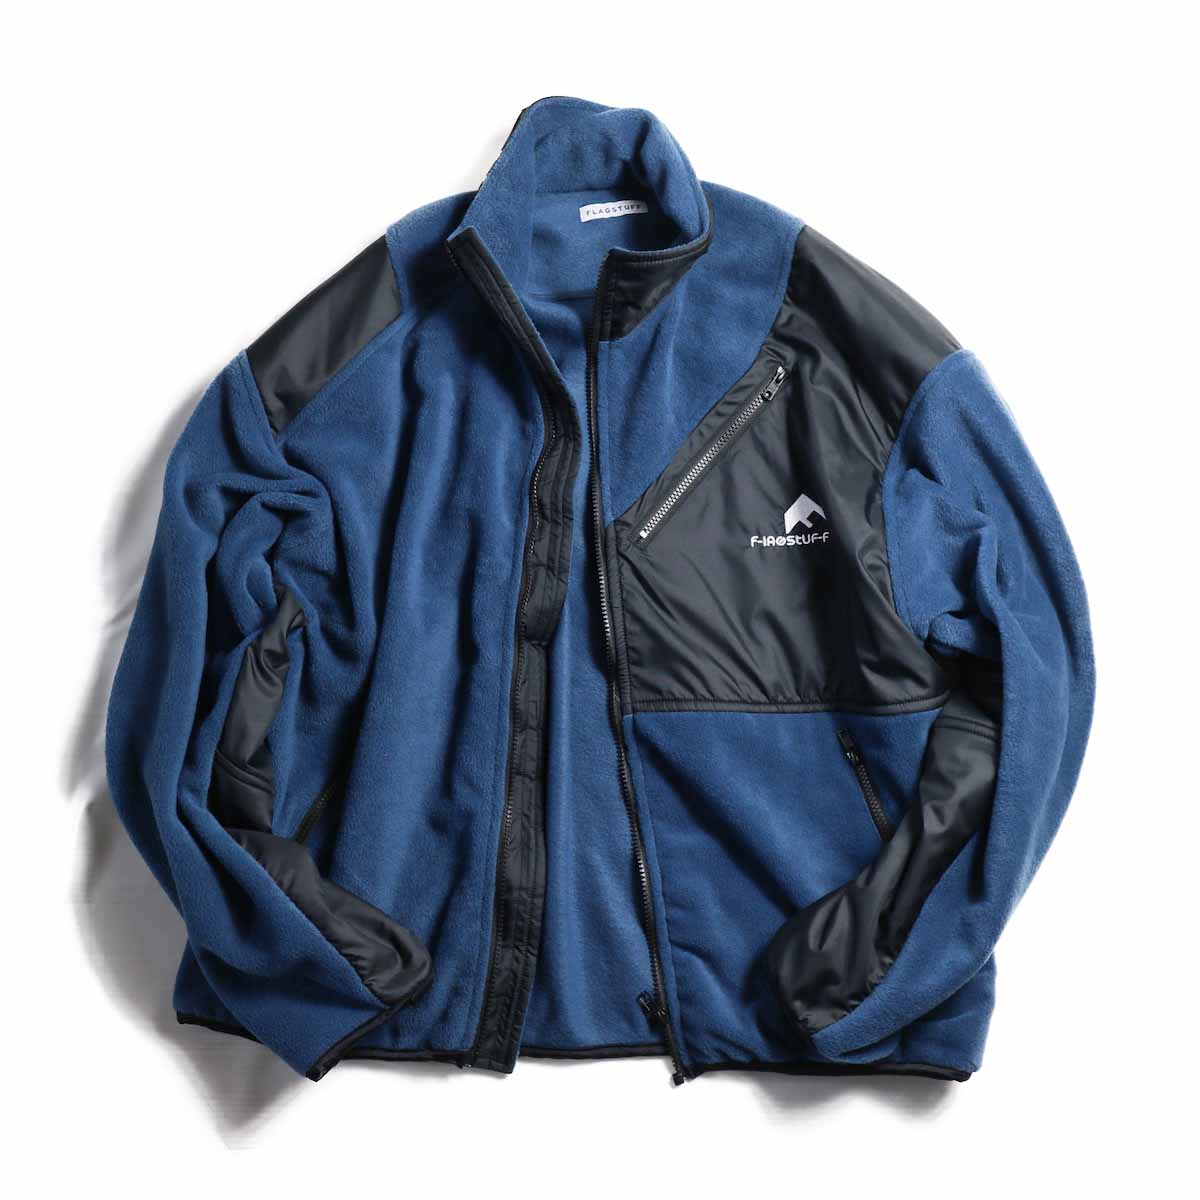 F-LAGSTUF-F / LIGHT F/Z FLEECE JKT -NAVY×BLACK